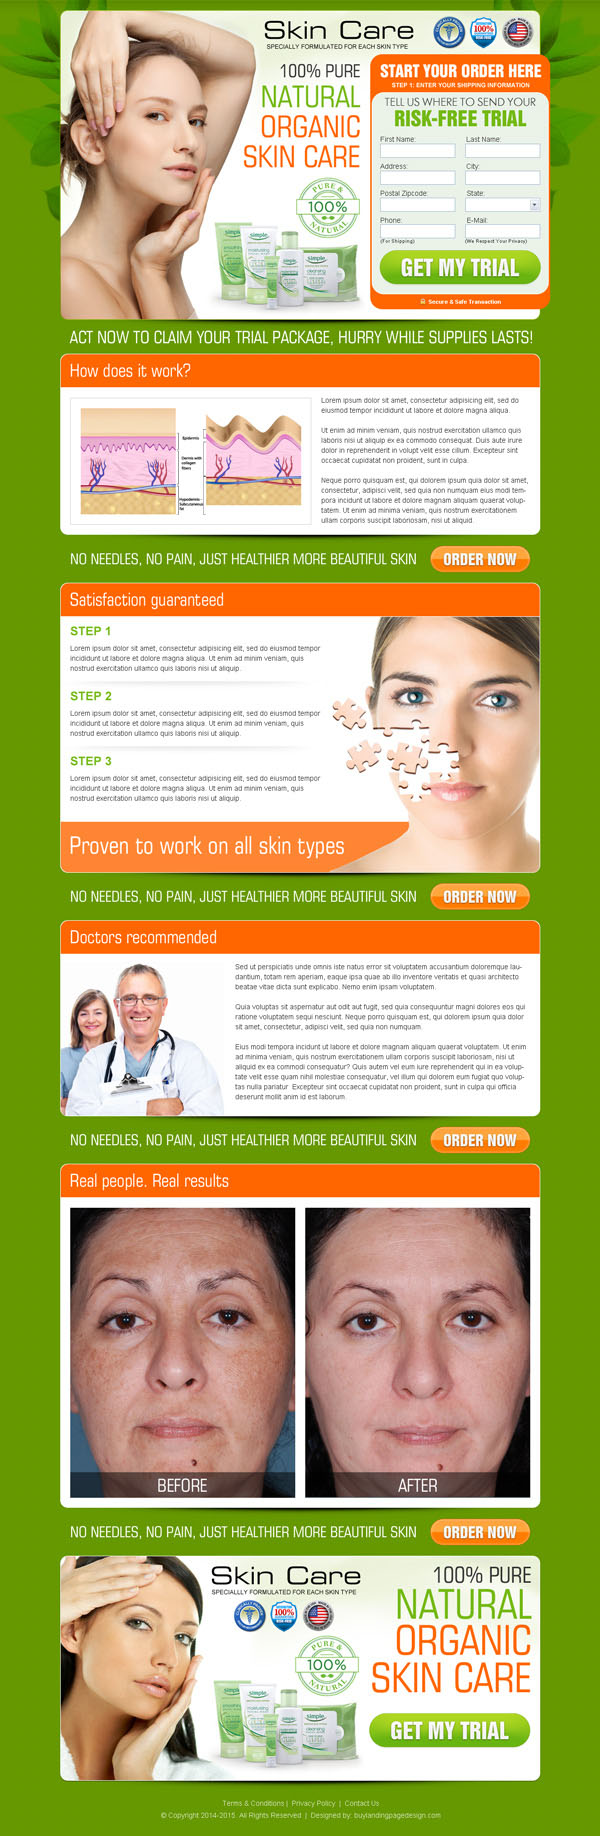 natural-organic-skin-care-product-selling-lead-capture-landing-page-design-templates-016